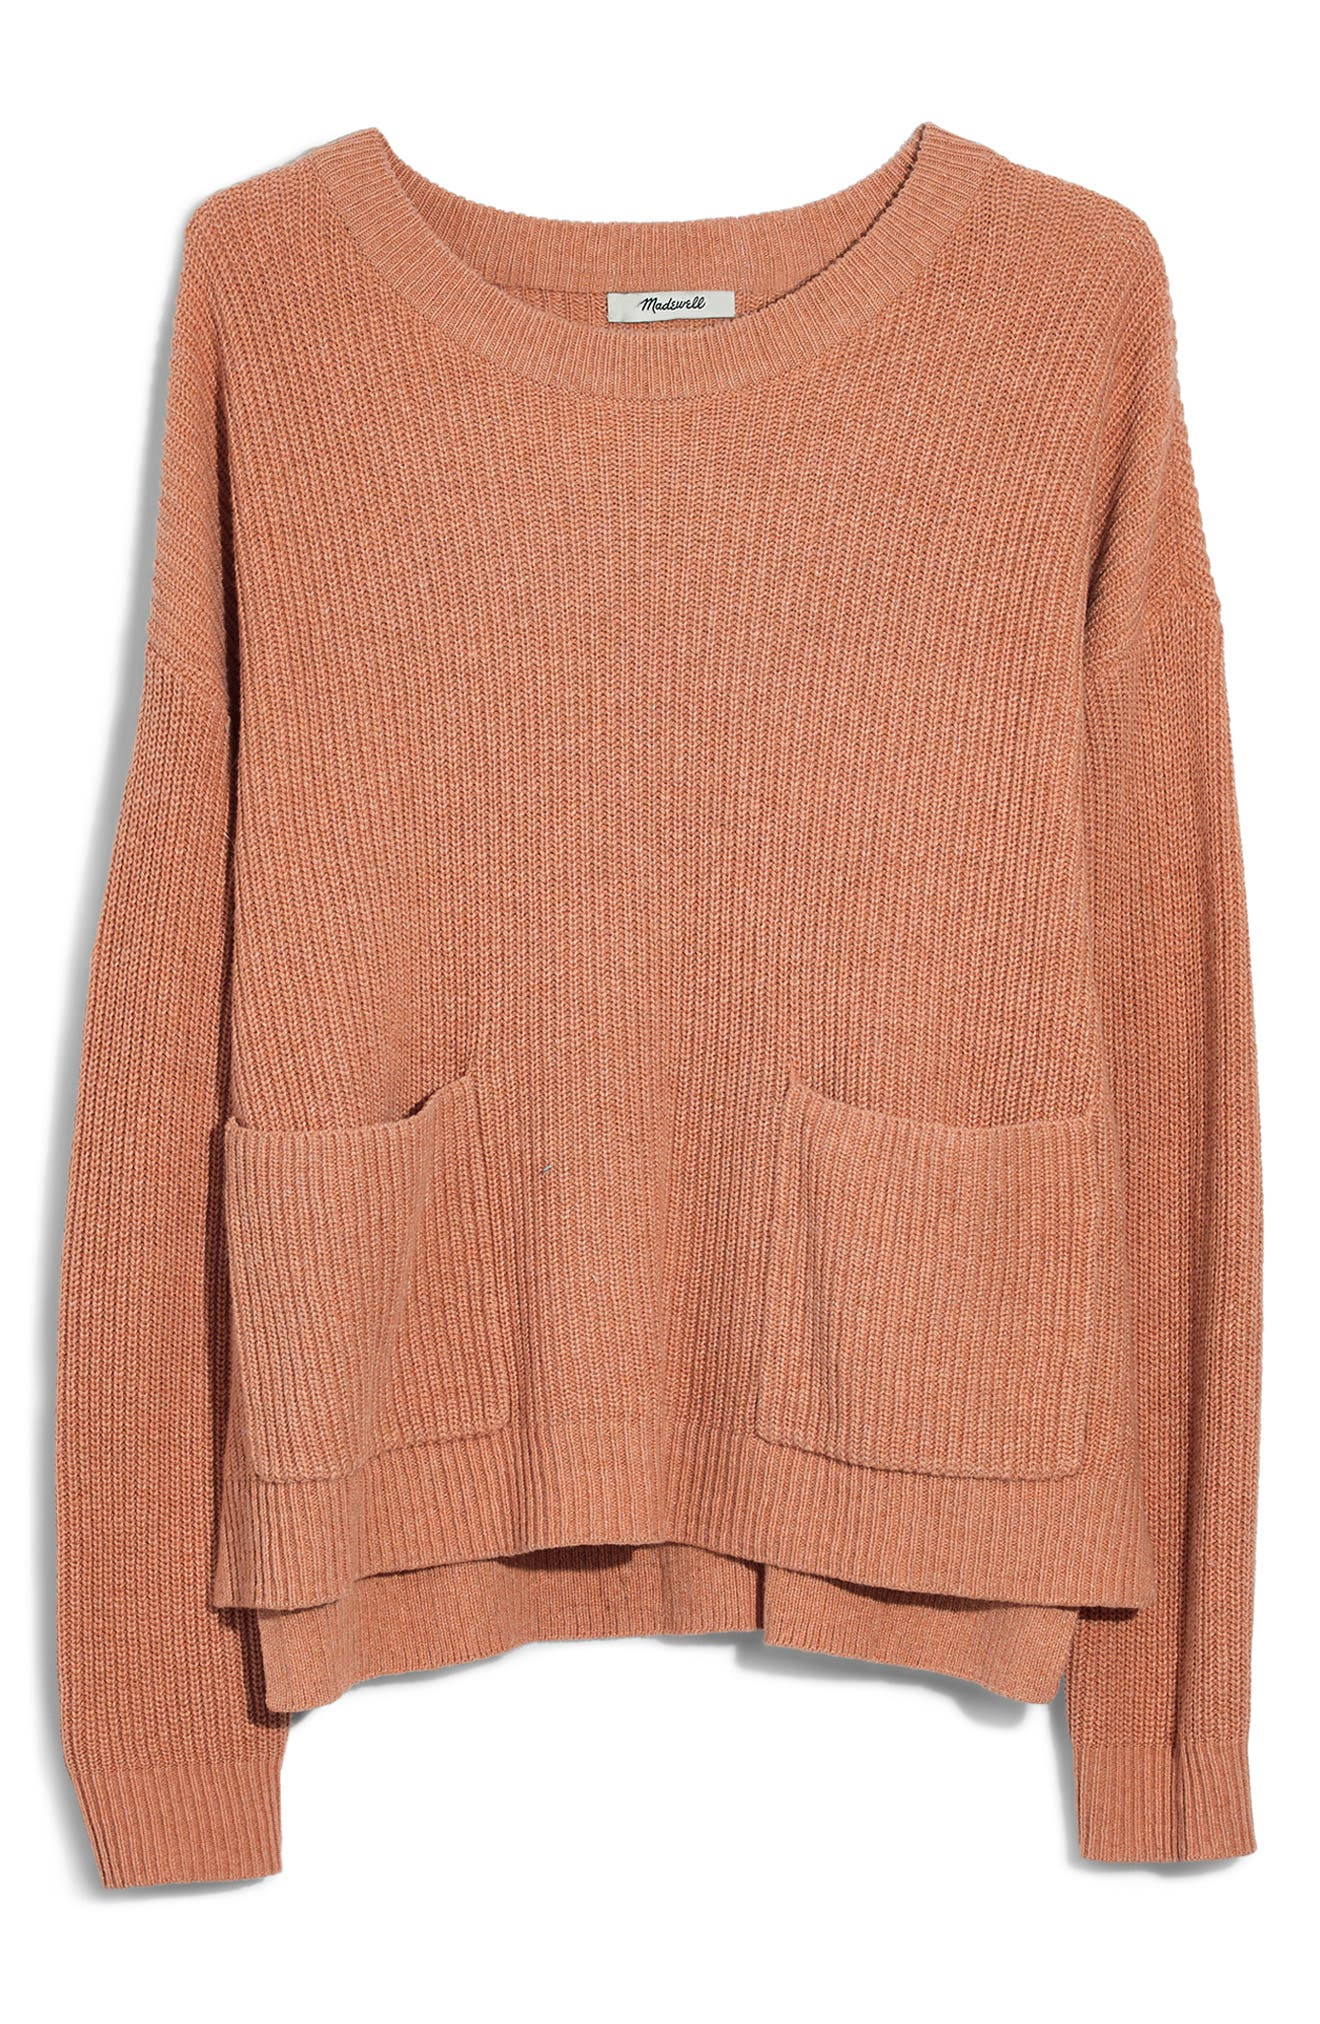 Patch Pocket Pullover Sweater,                             Main thumbnail 1, color,                             HEATHER ROSEWATER